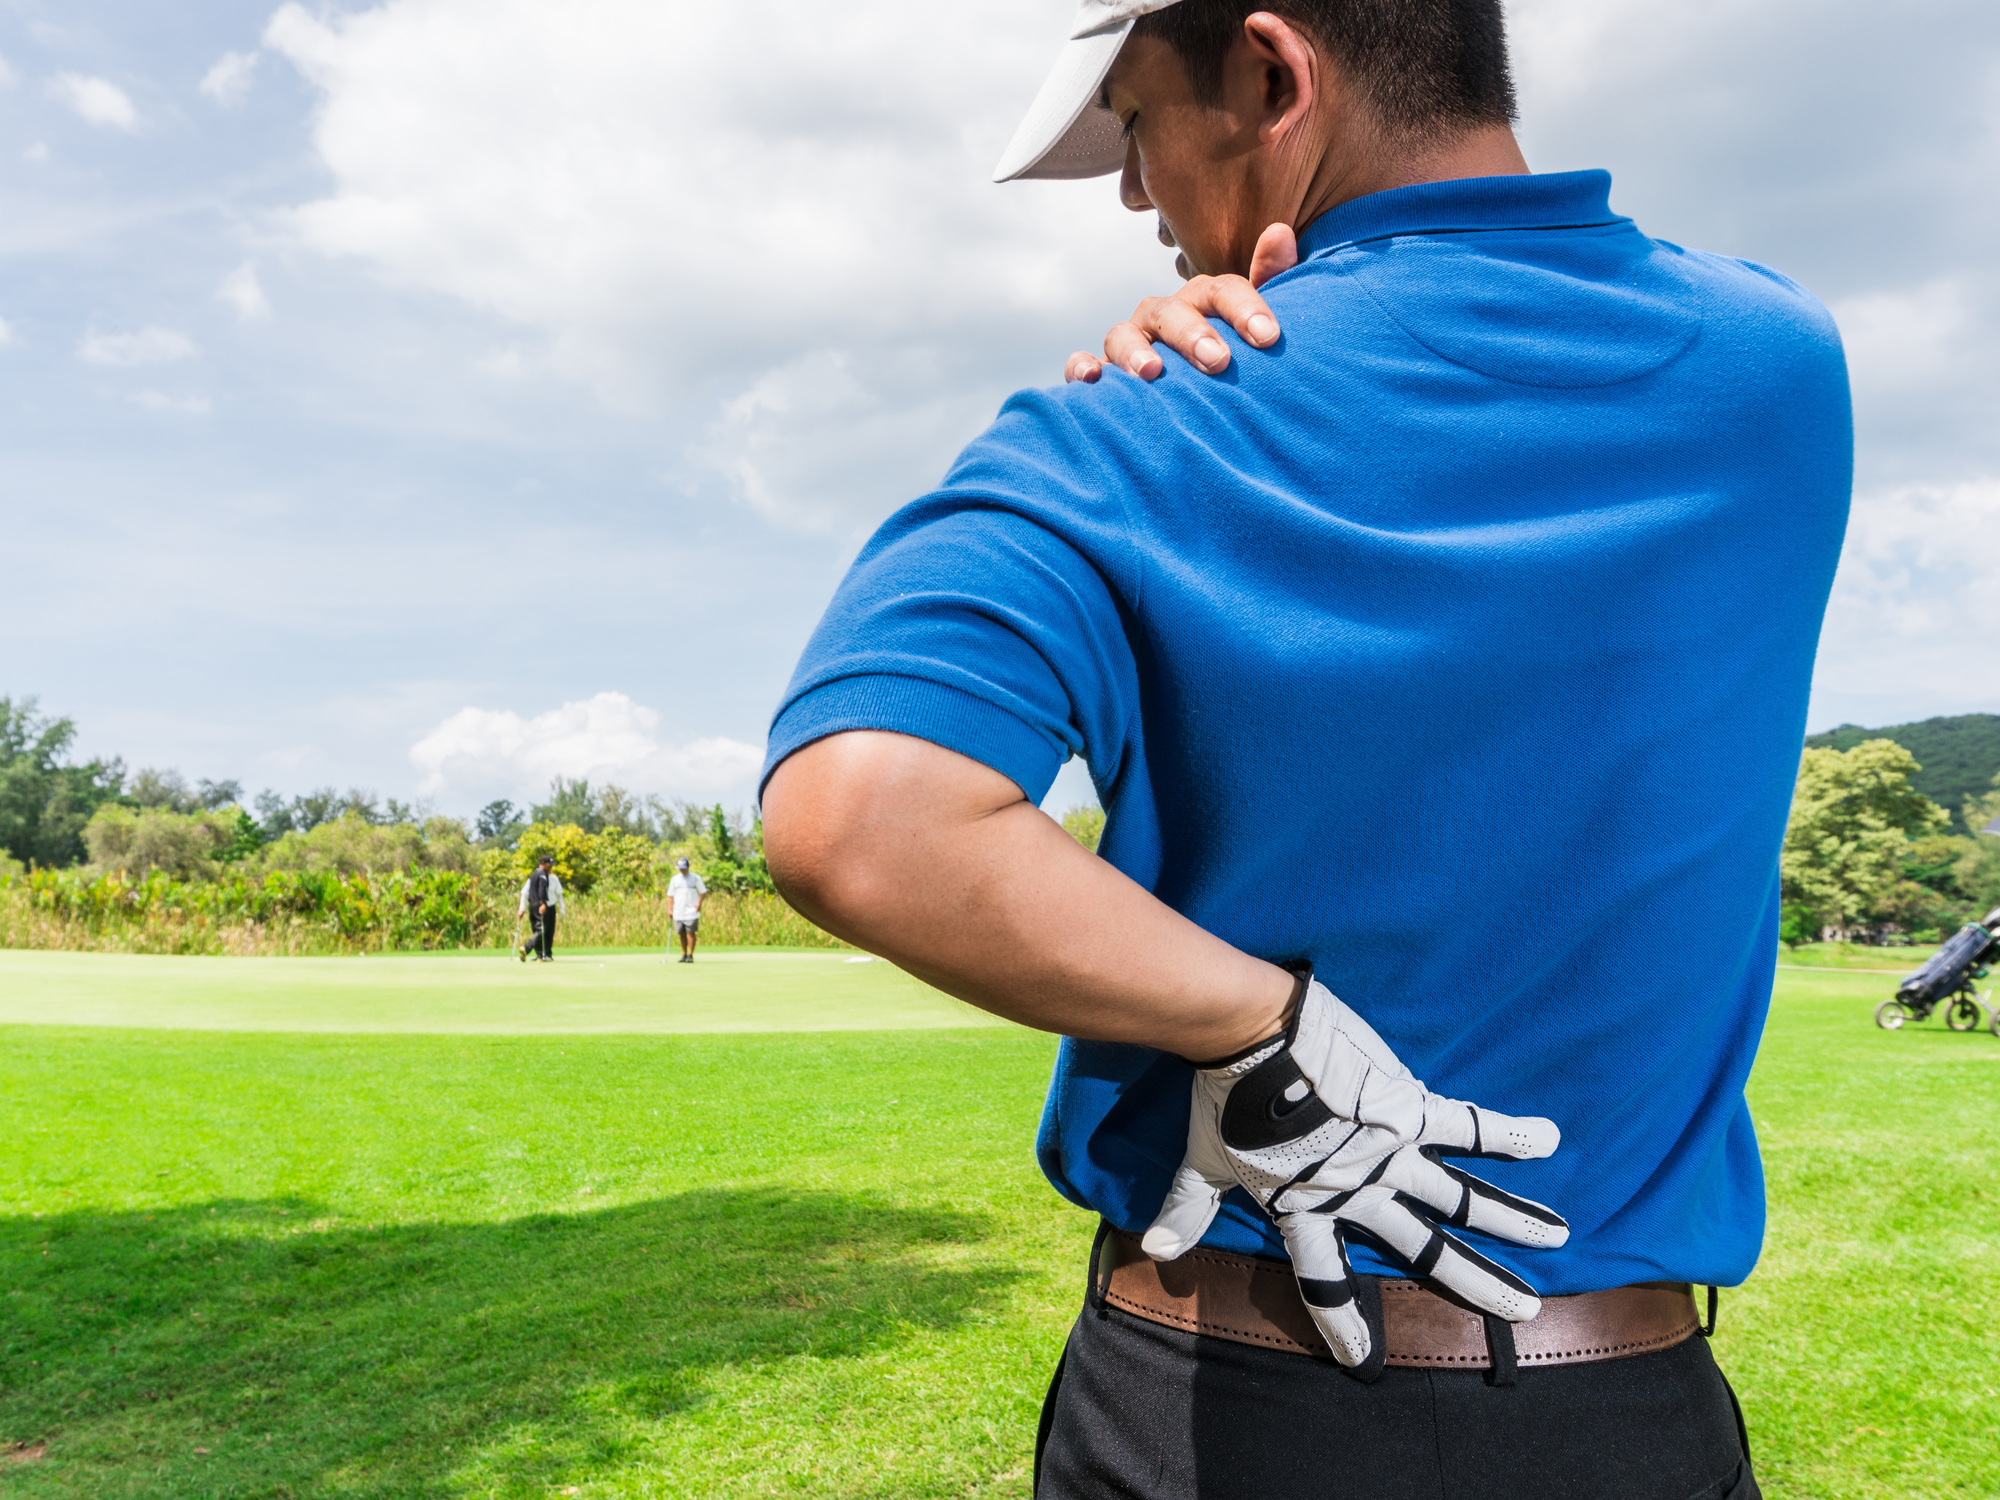 Chiropractic Care to Treat & Prevent Sports Injuries